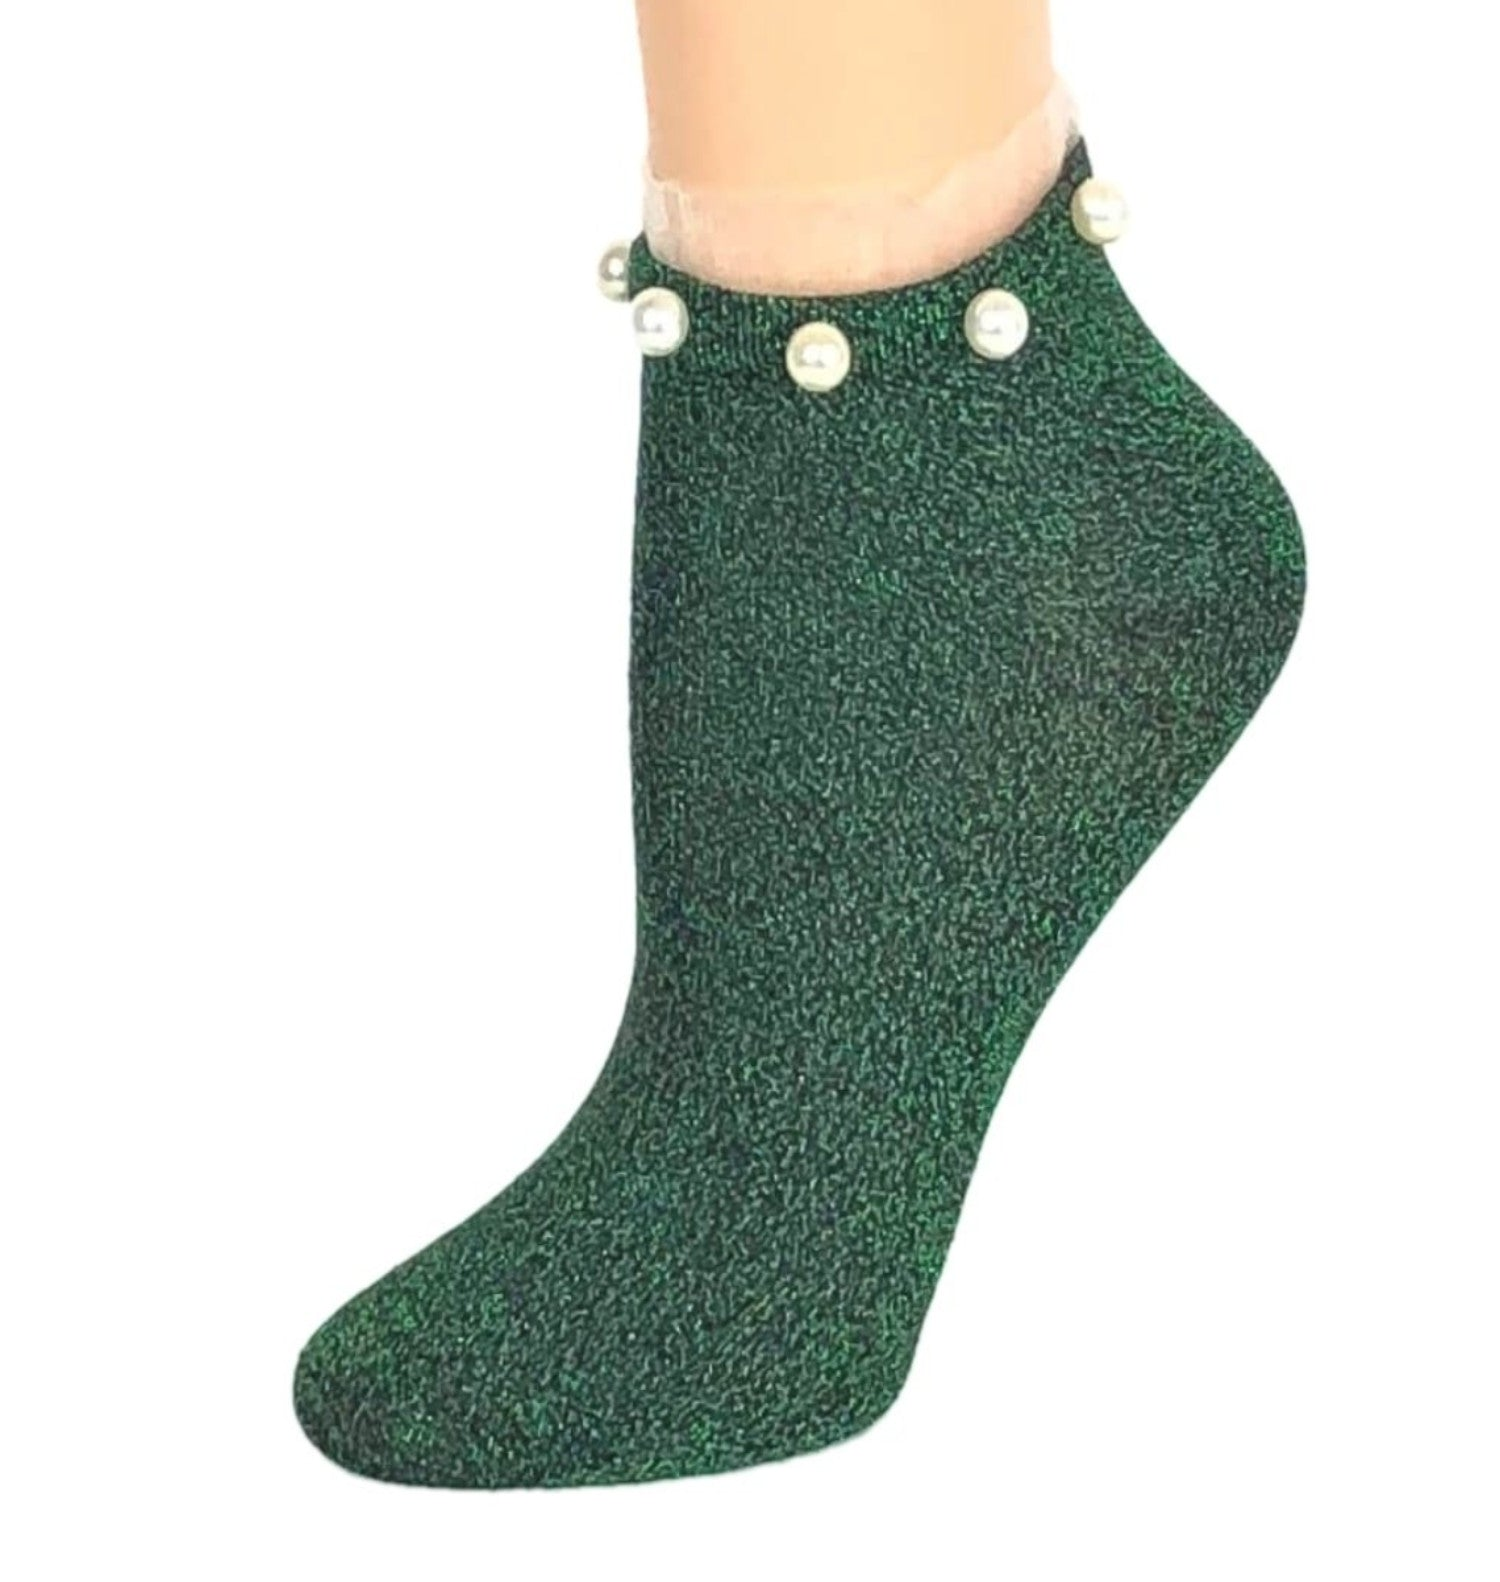 Stunning Pearls Green Glitter Socks - Global Trendz Fashion®